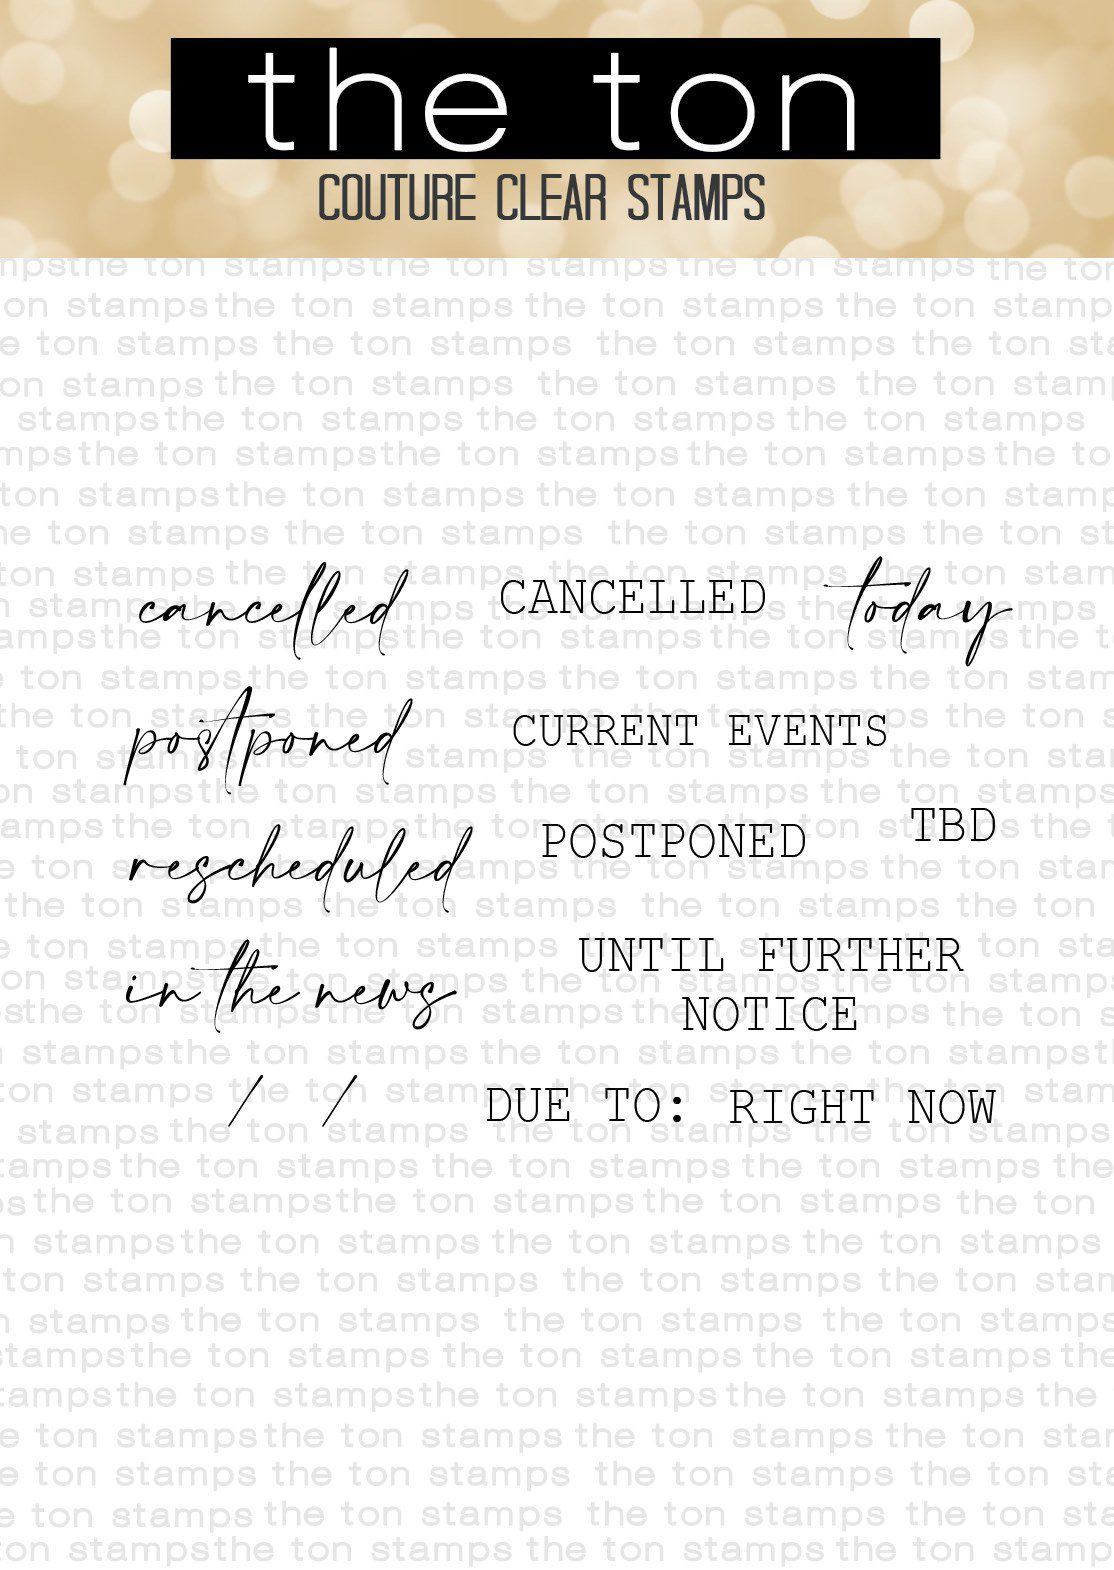 cancelled-2426402